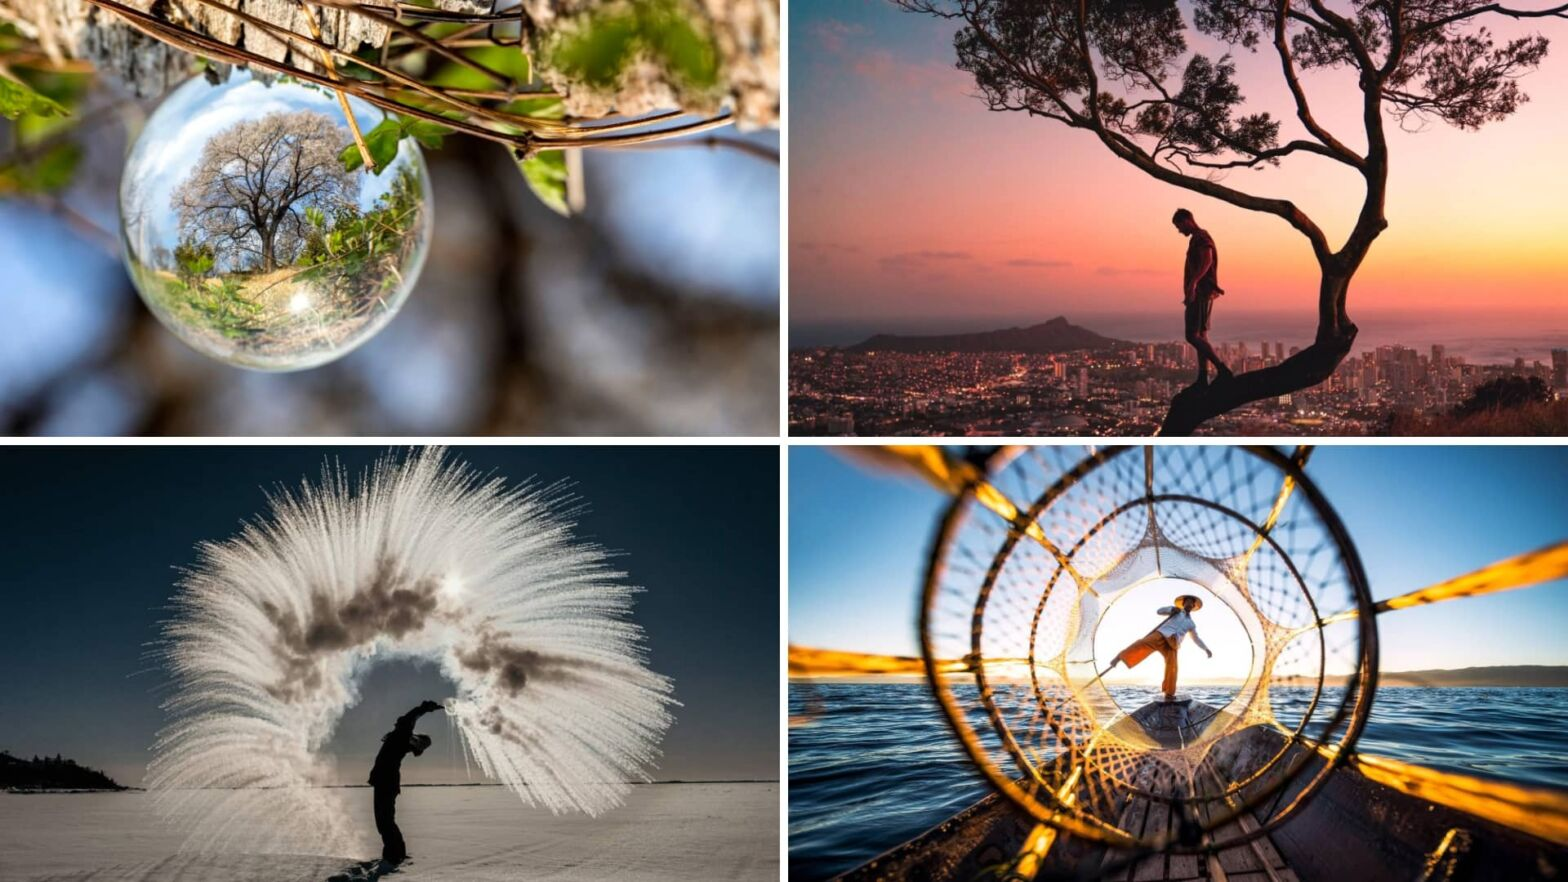 Creative Photography Ideas - Techniques To Get You Inspired - Featured